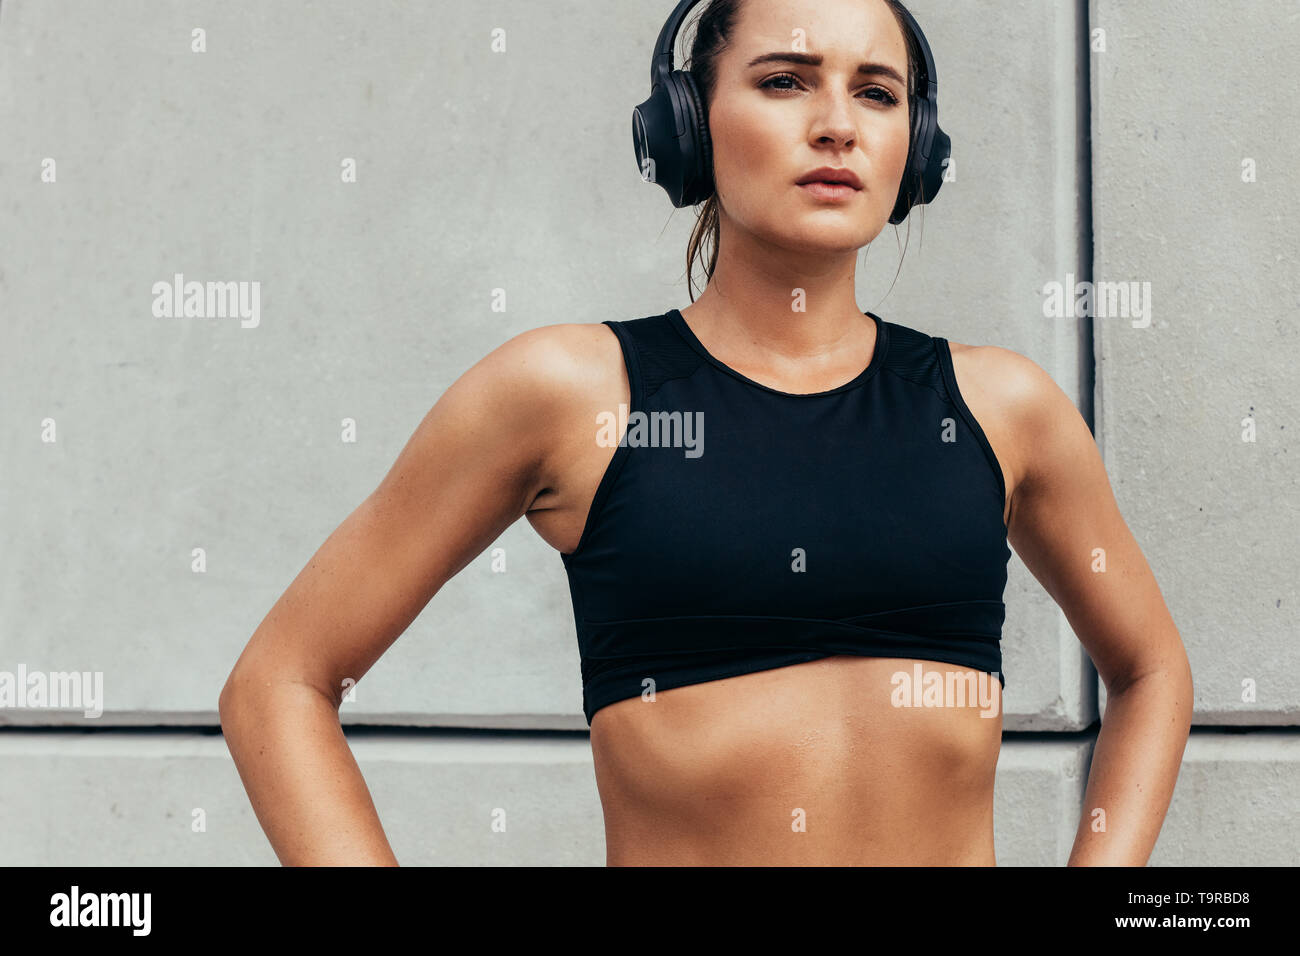 Confident sportswoman standing with her hands on hips and looking away. Fitness girl with headphones on taking break after workout. - Stock Image